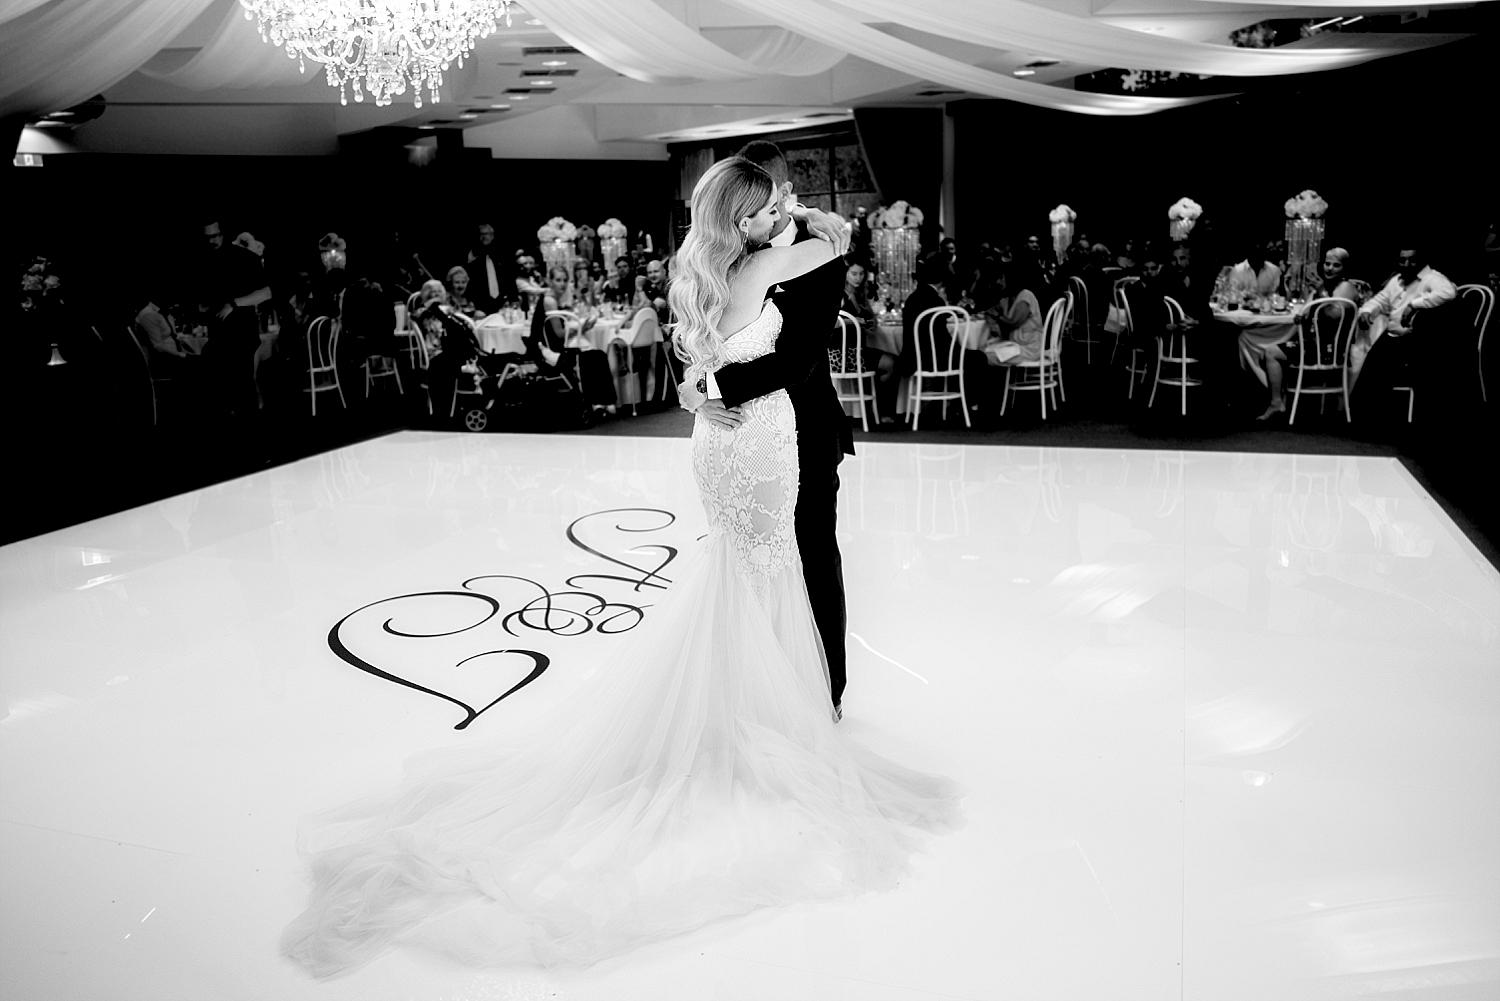 40 state reception centre first dance wedding perth deray simcoe.jpg